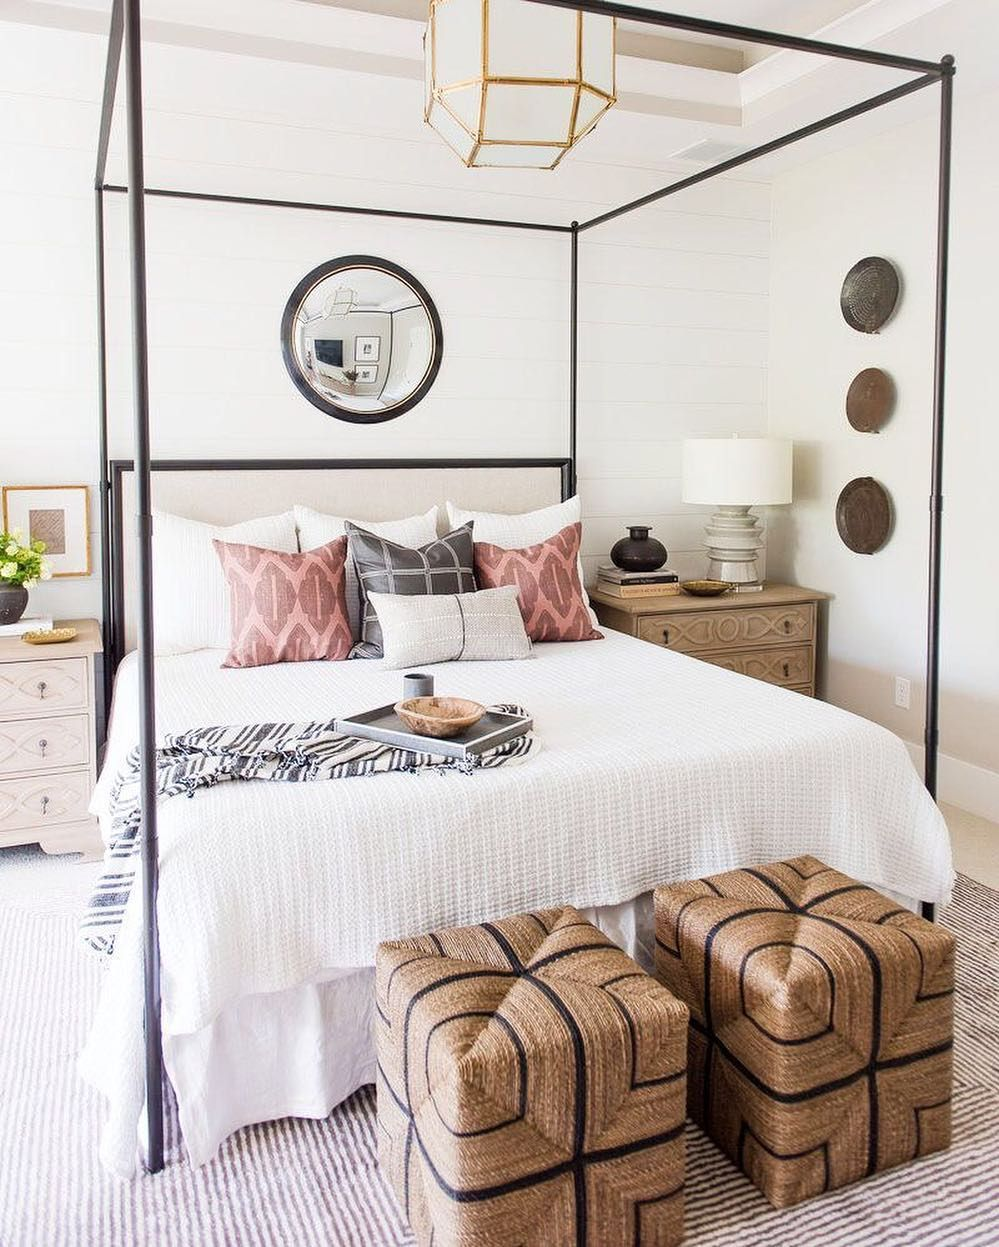 Kathy kuo home on instagram  cgood morning ig much needed inspiration to start off the week and our friend designer whittney brings it all also best interior decoration design images in bathroom rh pinterest